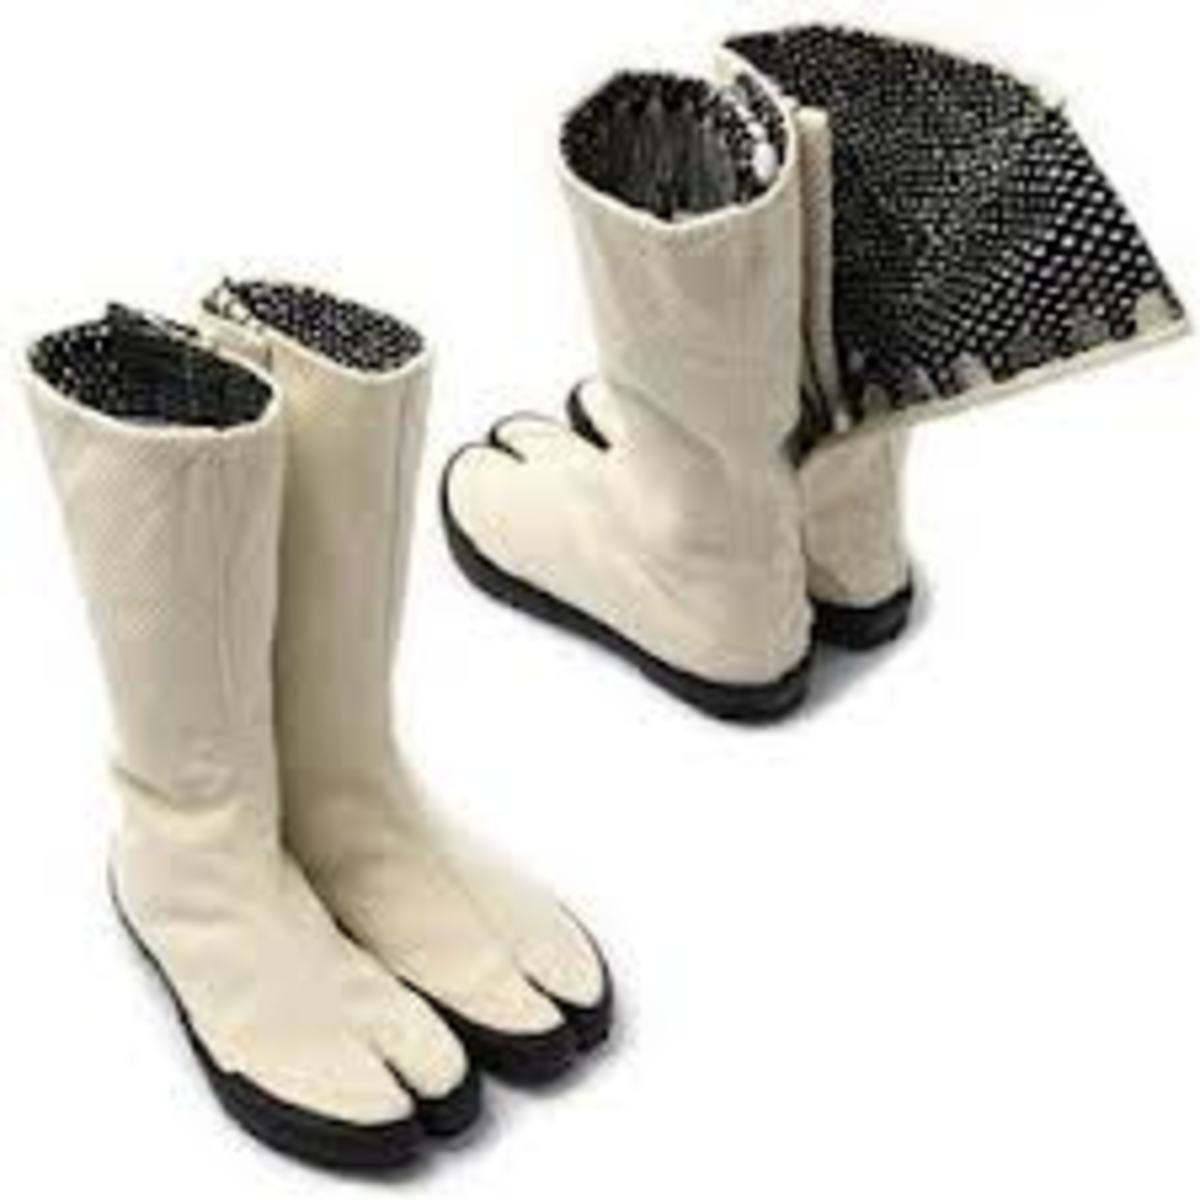 Since these boots are reminiscent of goat hooves, maybe they could be used on a farm.